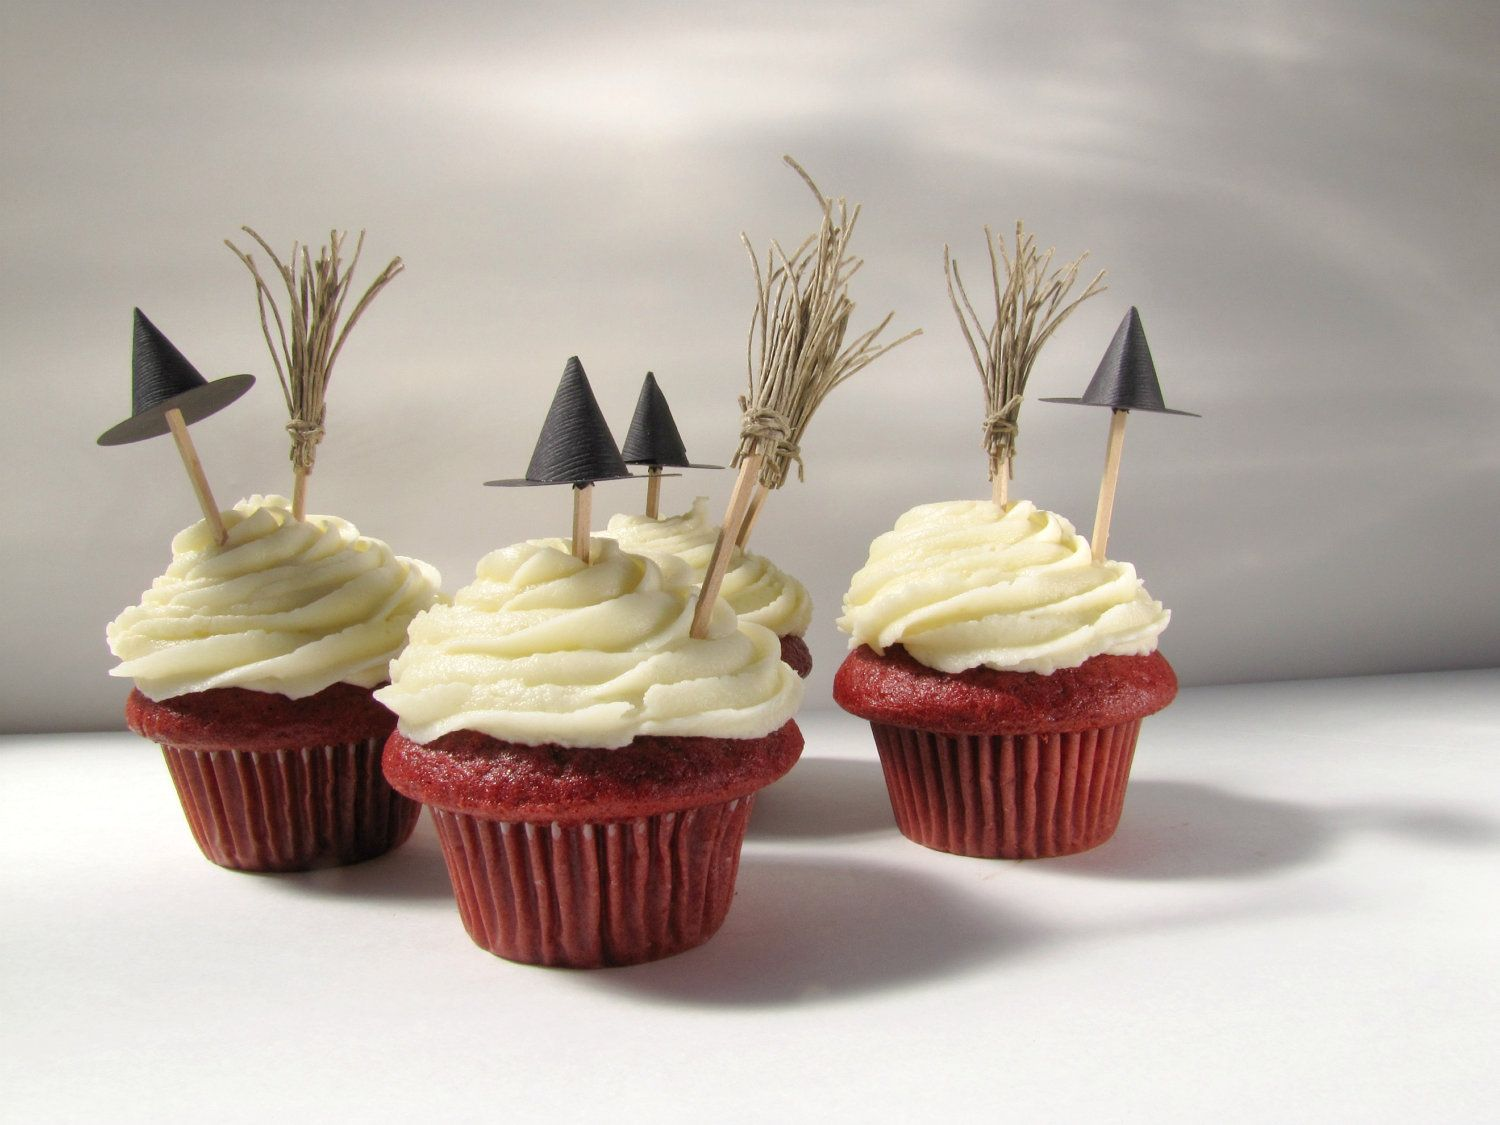 Halloween Cupcake Toppers Witches\u0027 Brew, Set of 12 by Kiwi Tini - Halloween Cake Decorating Ideas